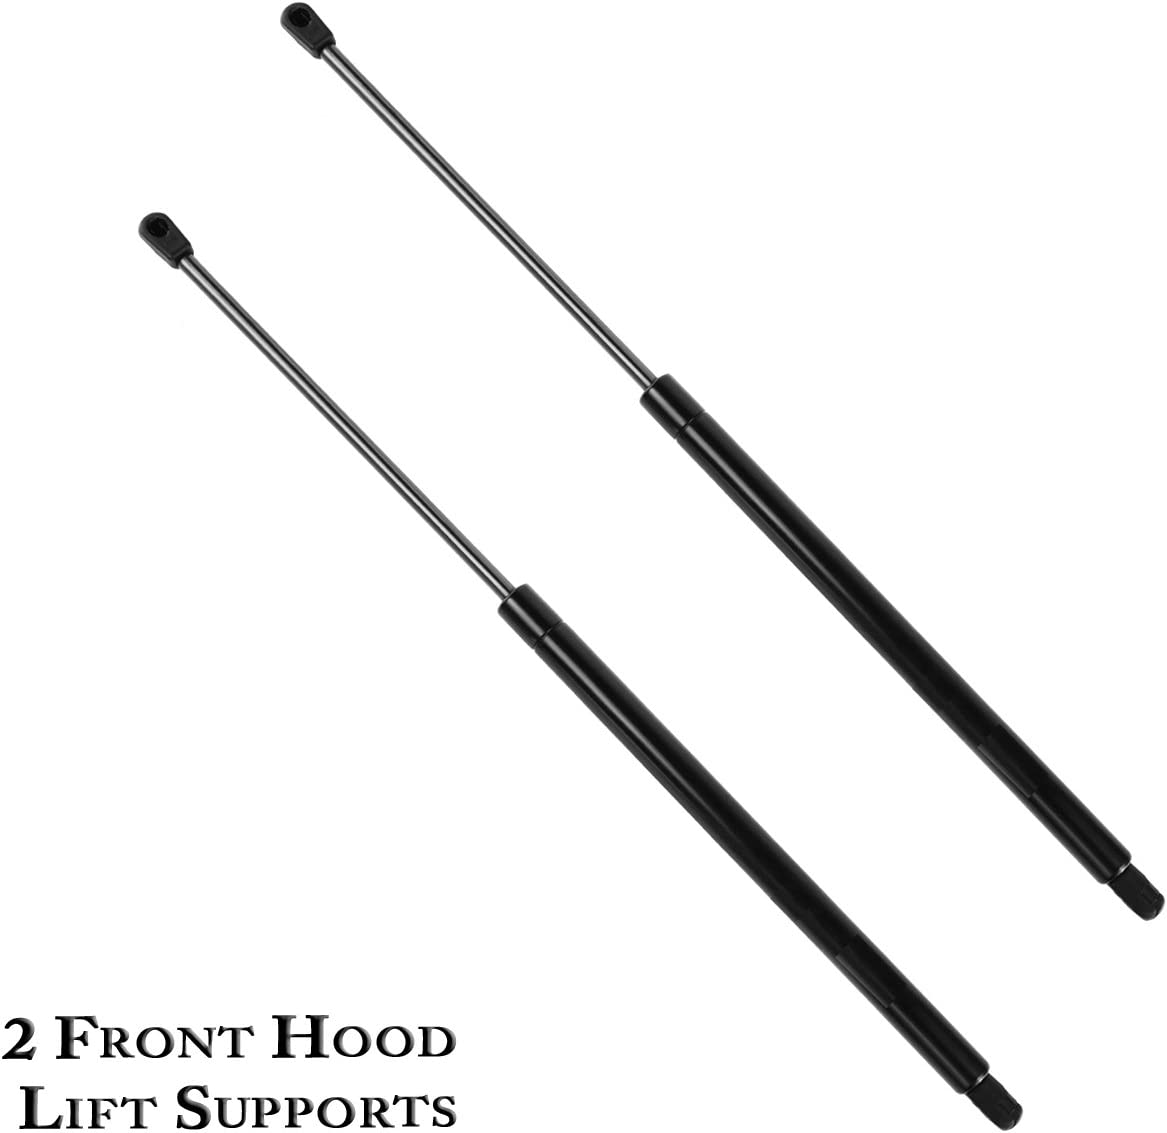 2 Pack Front Hood Lift Support Struts Gas Springs for 2002-2010 Dodge Ram 1500 2500 3500 2008-2010 Dodge Ram 4500 5500 Compatible with 4364 Struts